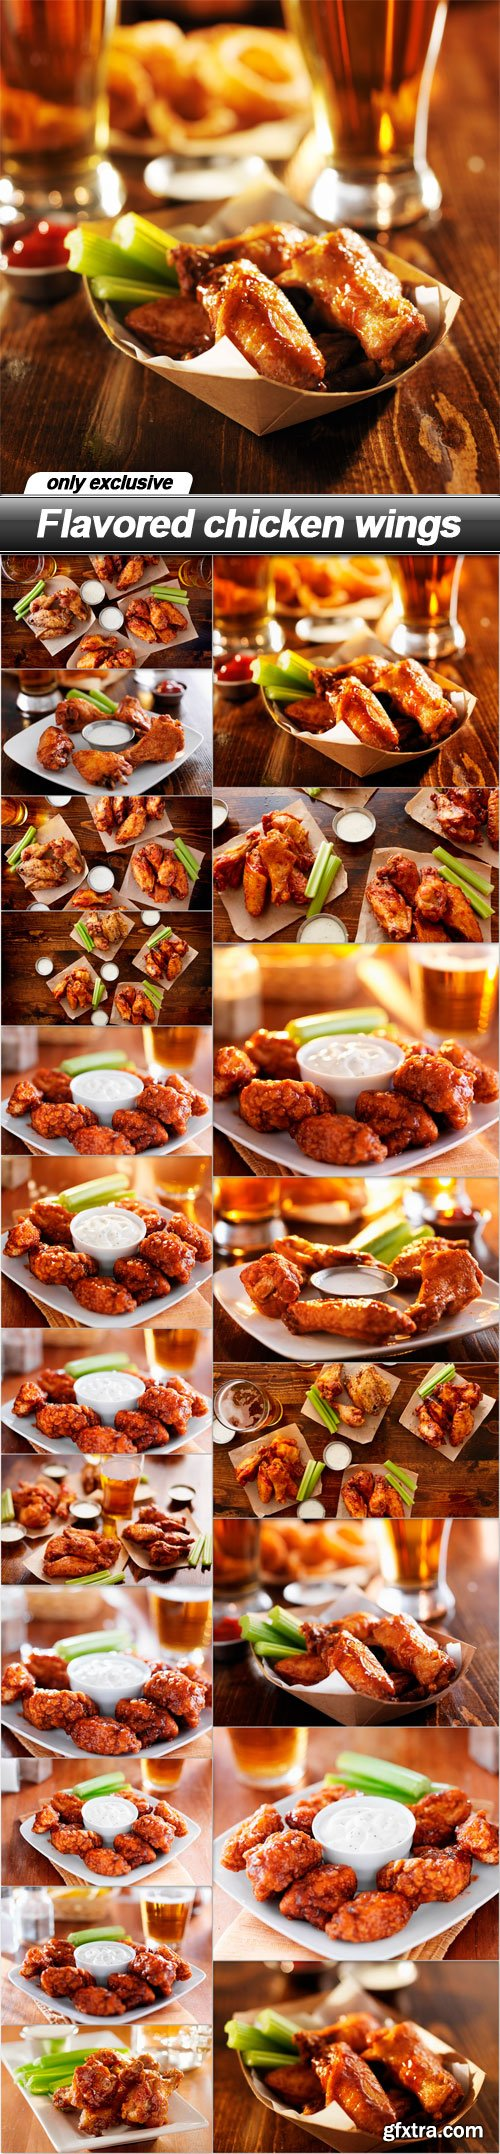 Flavored chicken wings - 20 UHQ JPEG